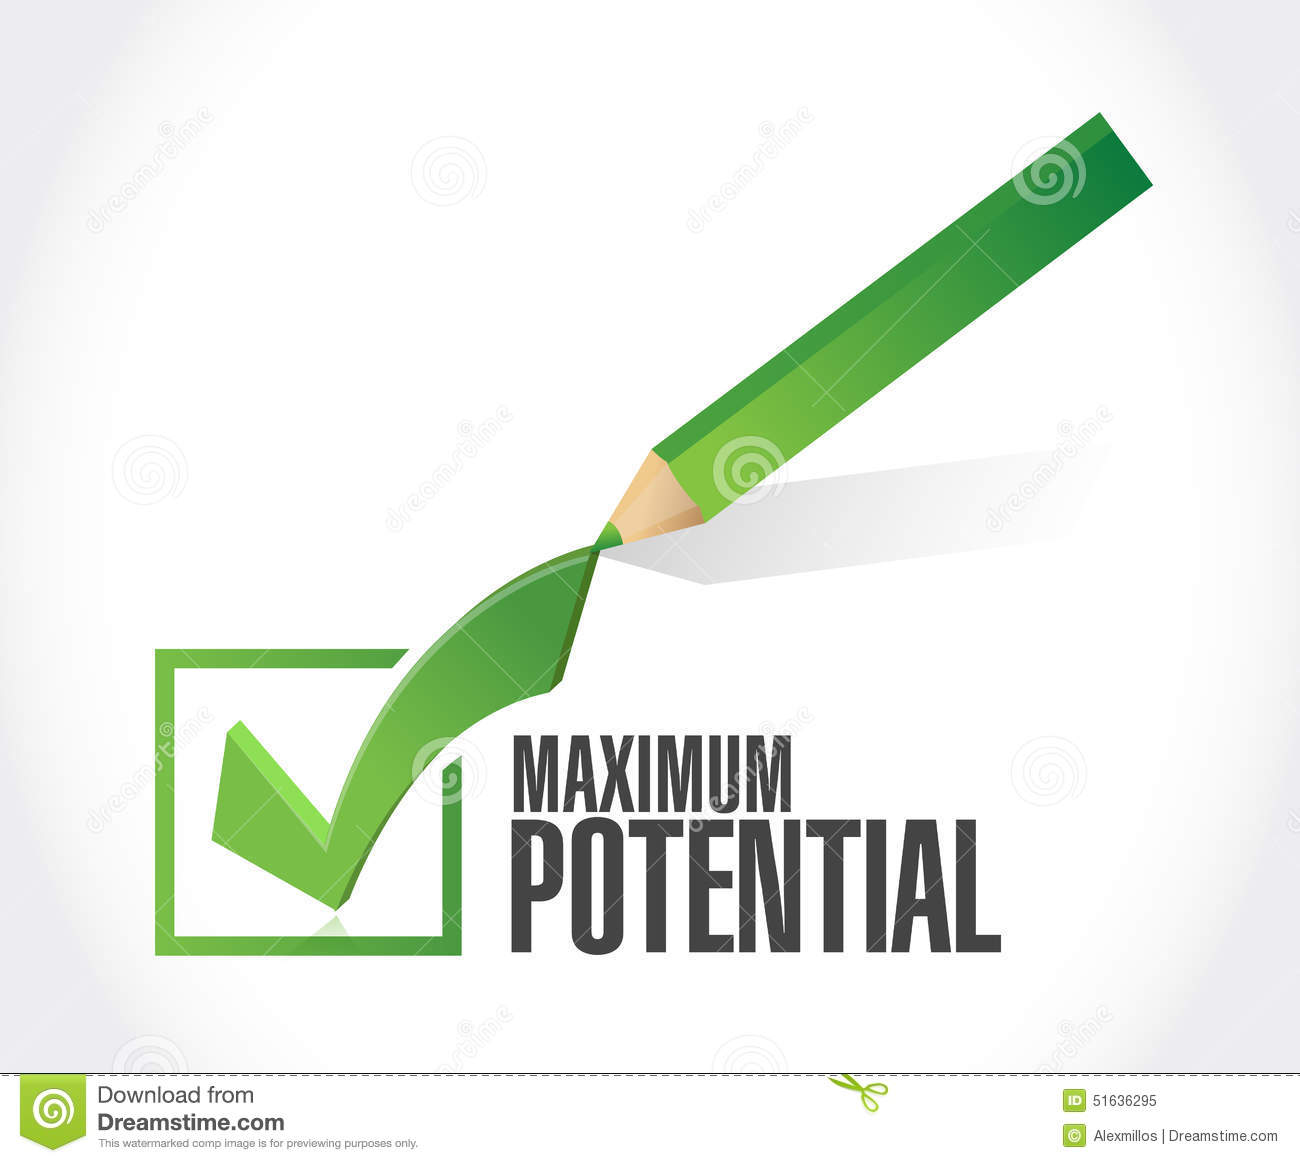 To Maximise The Potential Of: Maximum Potential Check Mark Sign Concept Stock